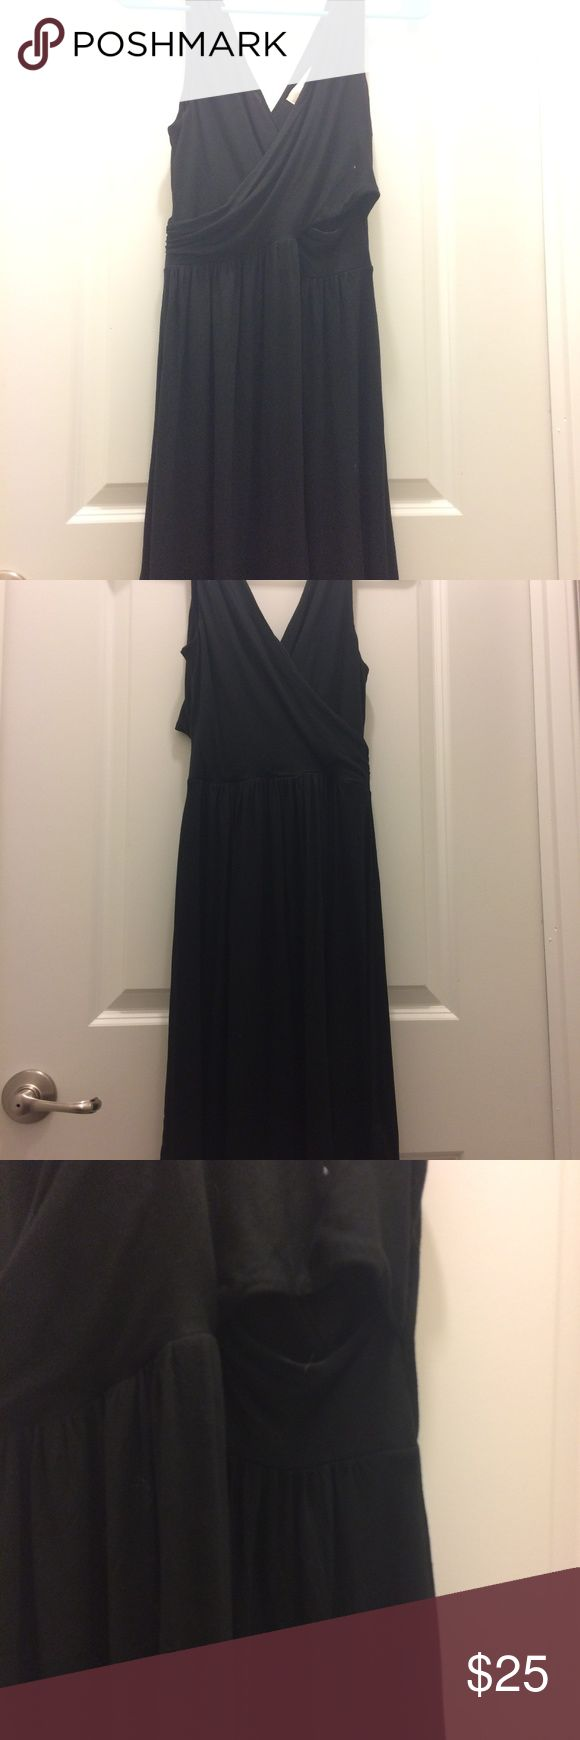 Never Worn! JerseCriss-Cross Cutout Black Sundress Breezy cotton sundress with criss-cross front and back top. There is a cutout on one side for an interesting take on the hot style of dress cutouts. LOFT Dresses Midi